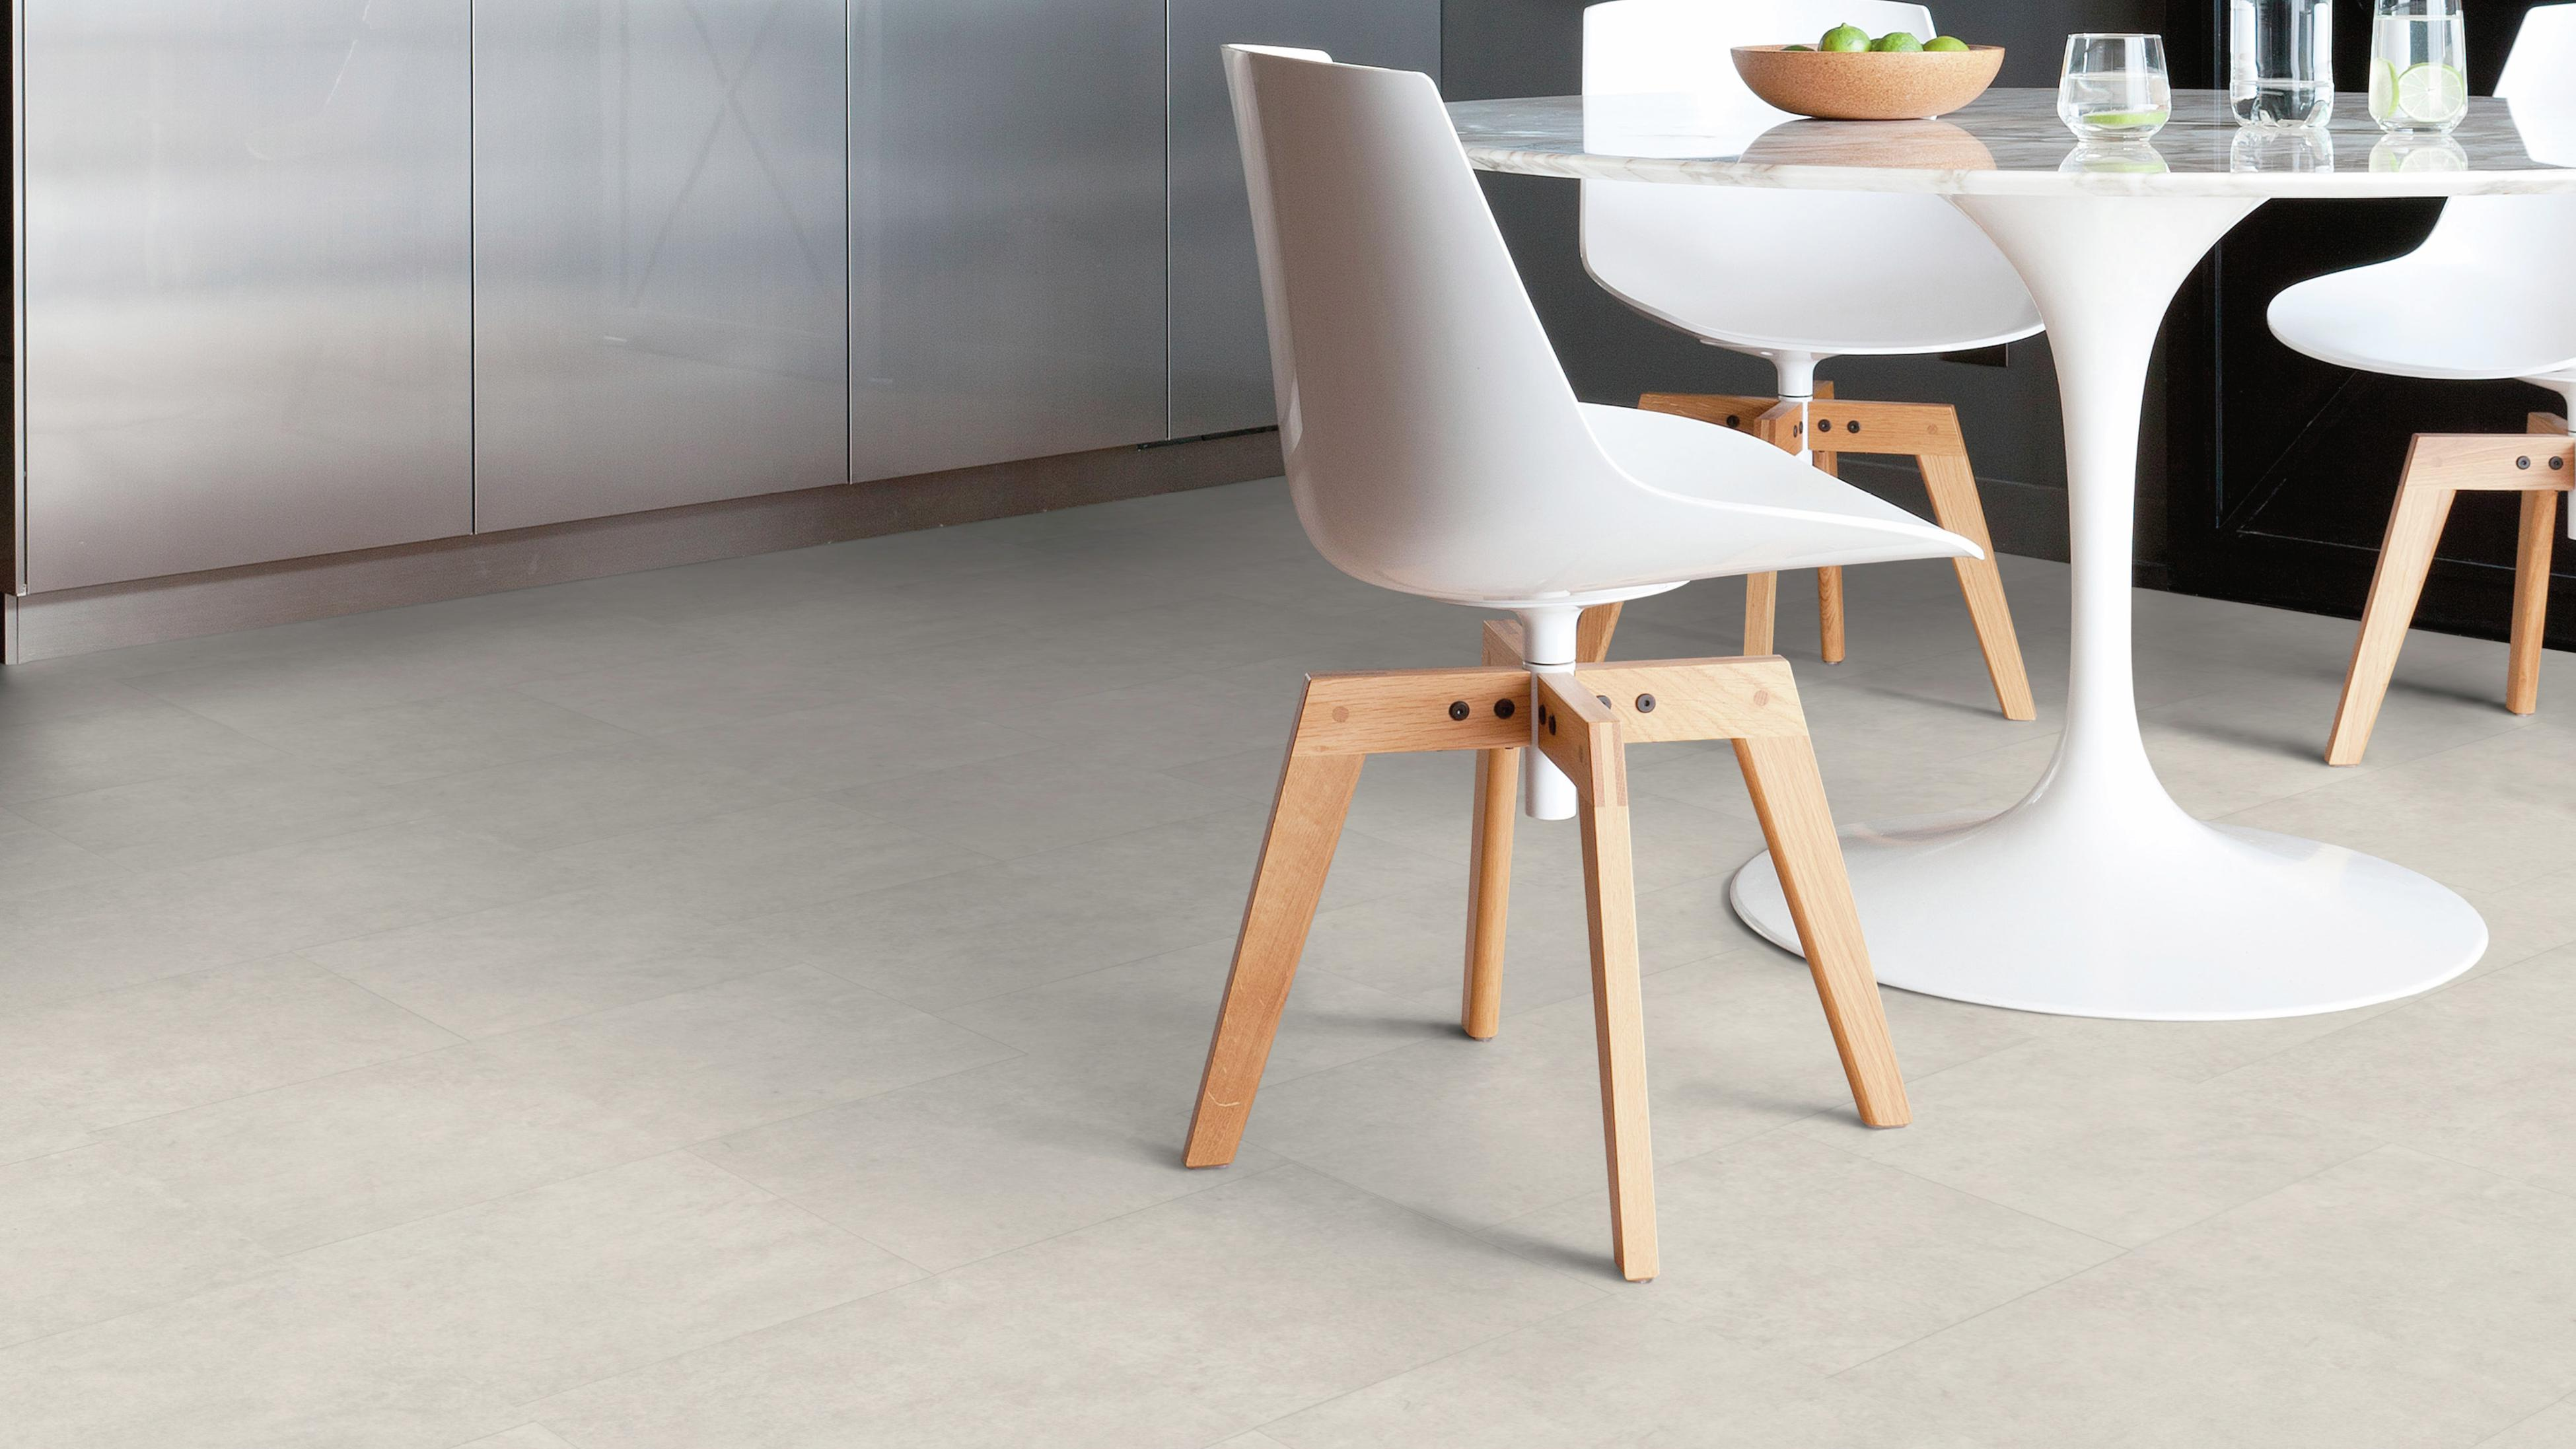 Vinyl floors in a kitchen and dining area